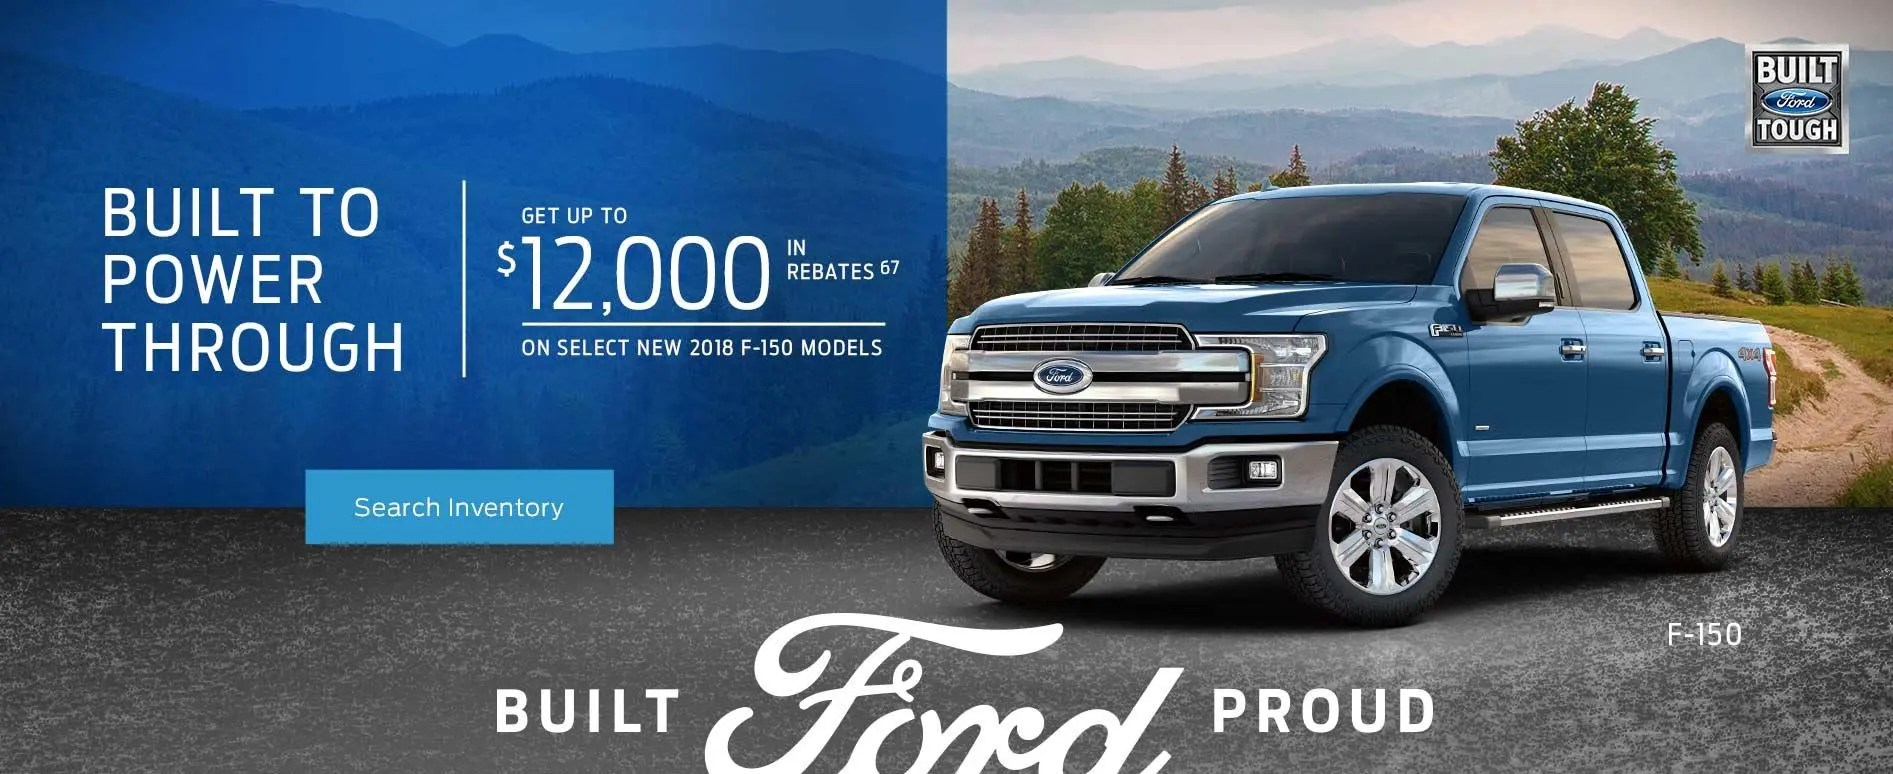 New And Used Cars Killaloe Ford Dealer New Used Cars Trucks Suvs Summers Bros